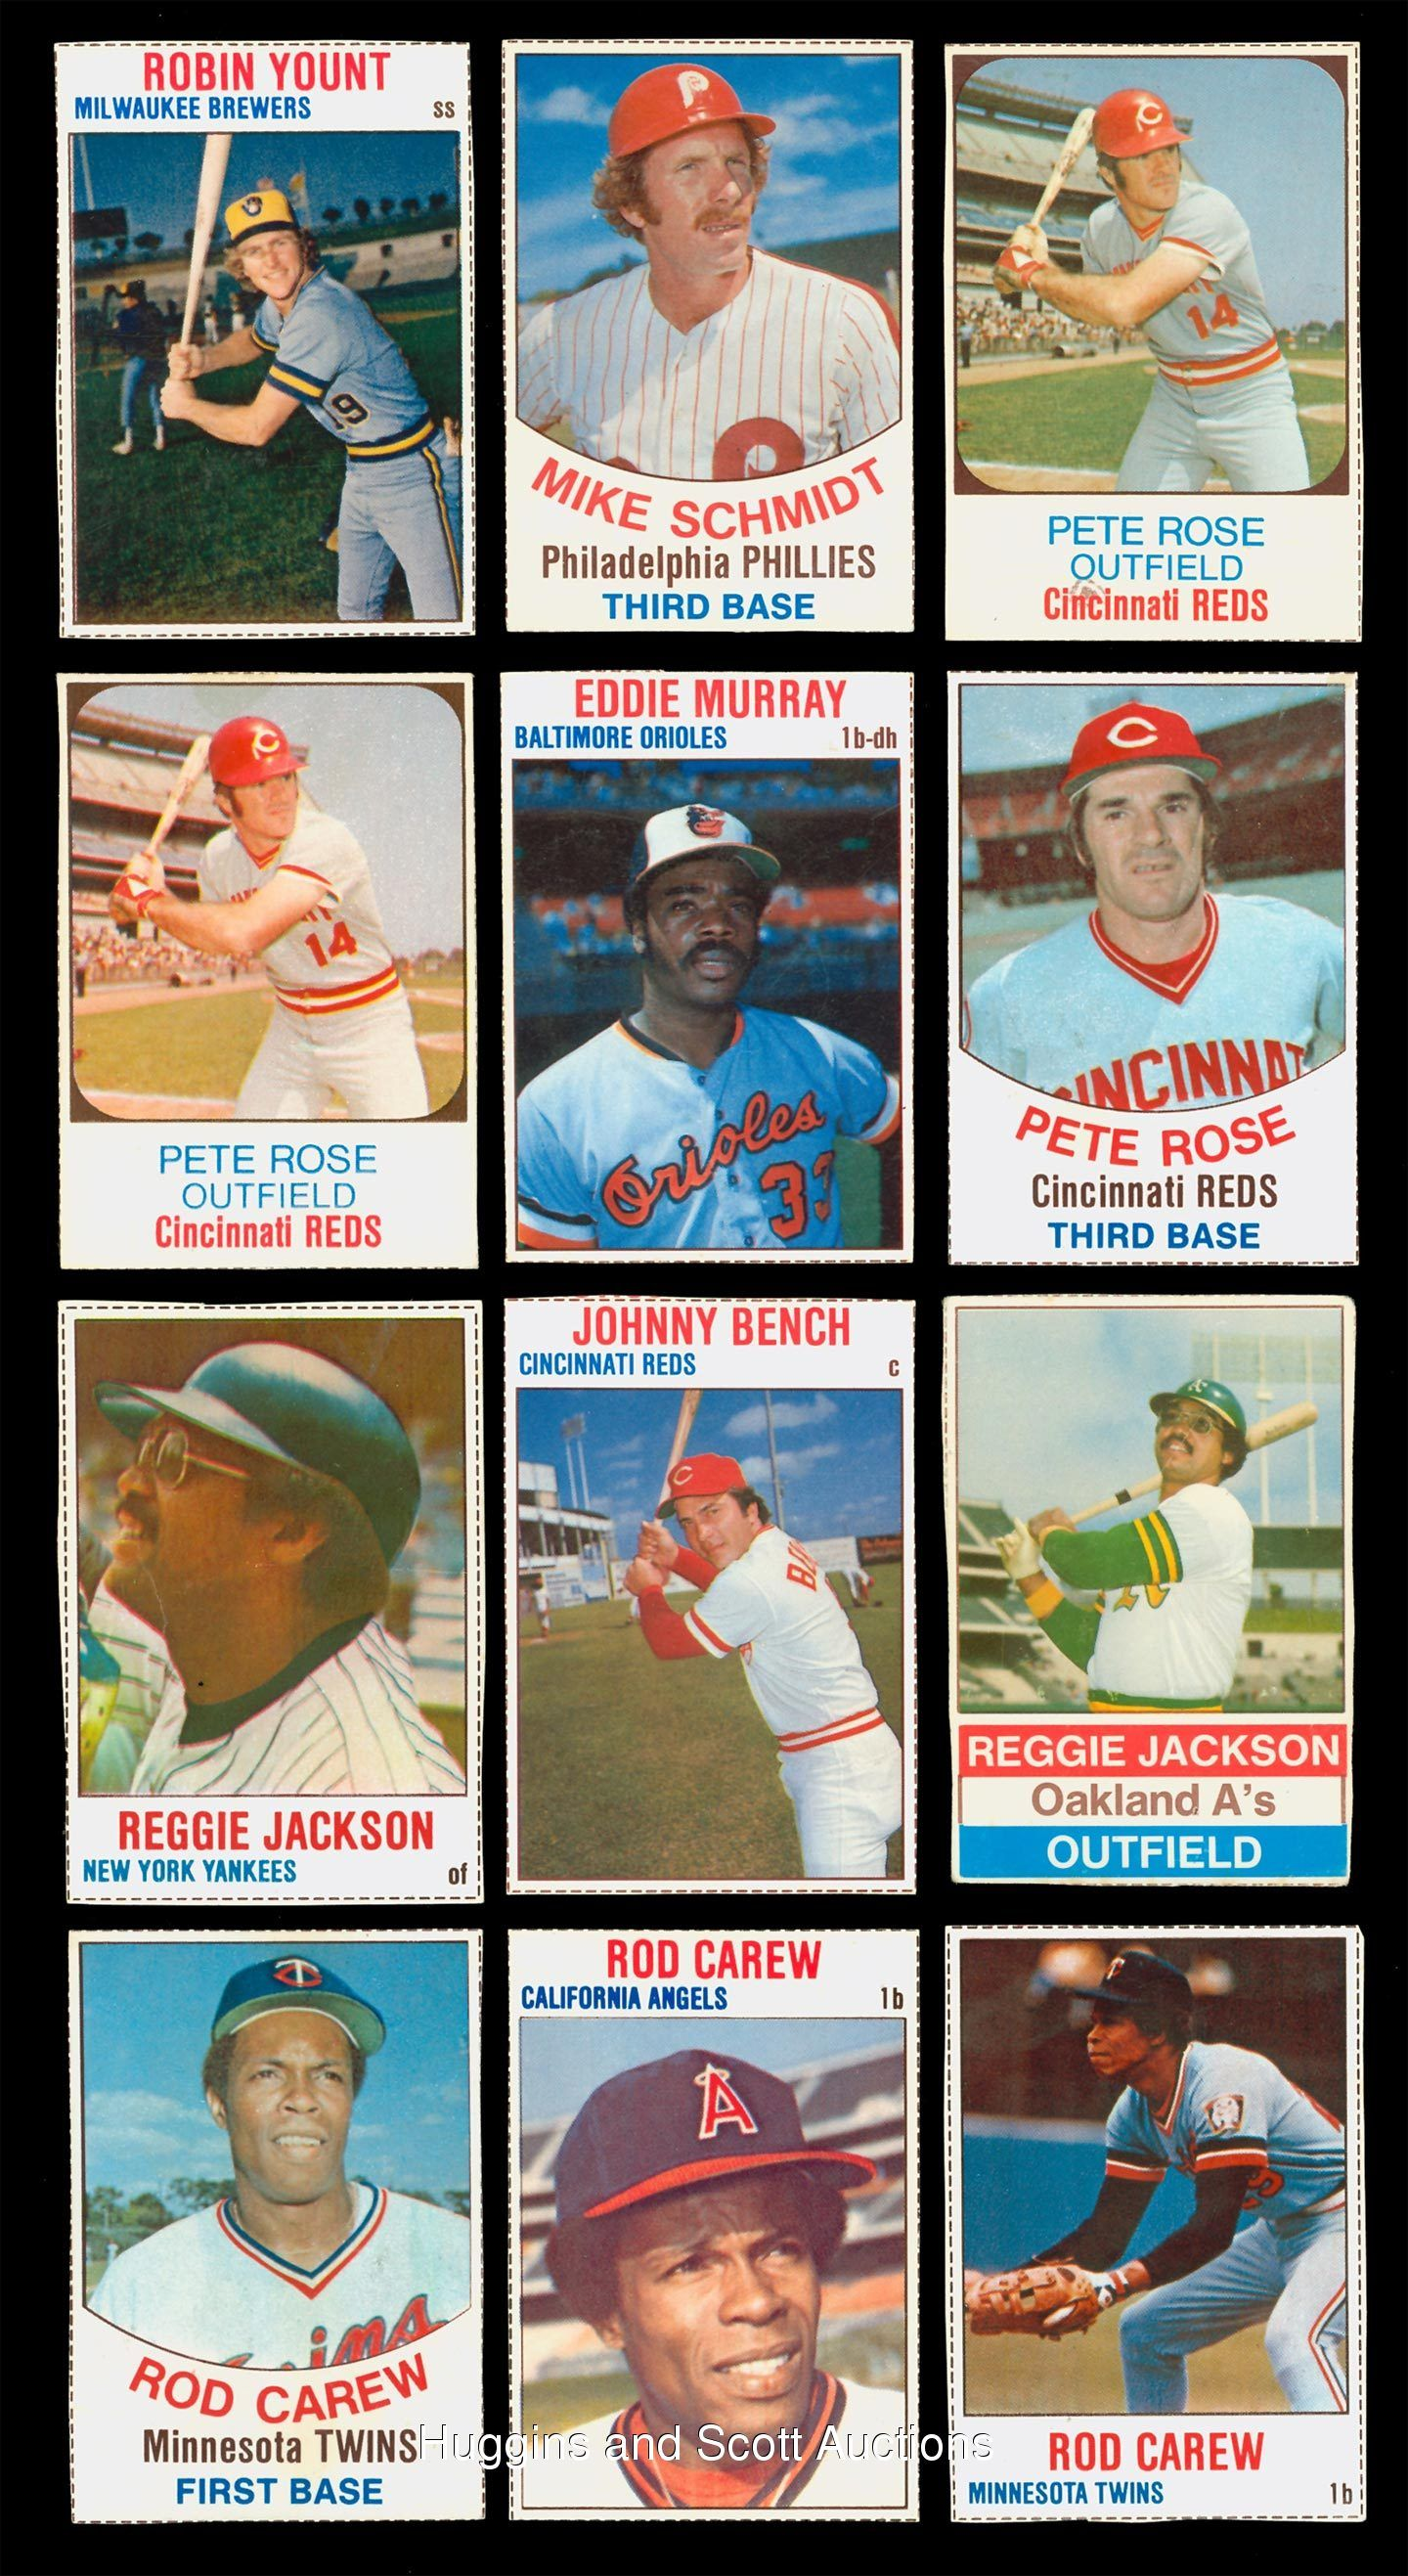 1976 Hostess Baseball Cards 405 1970s Hostess Baseball